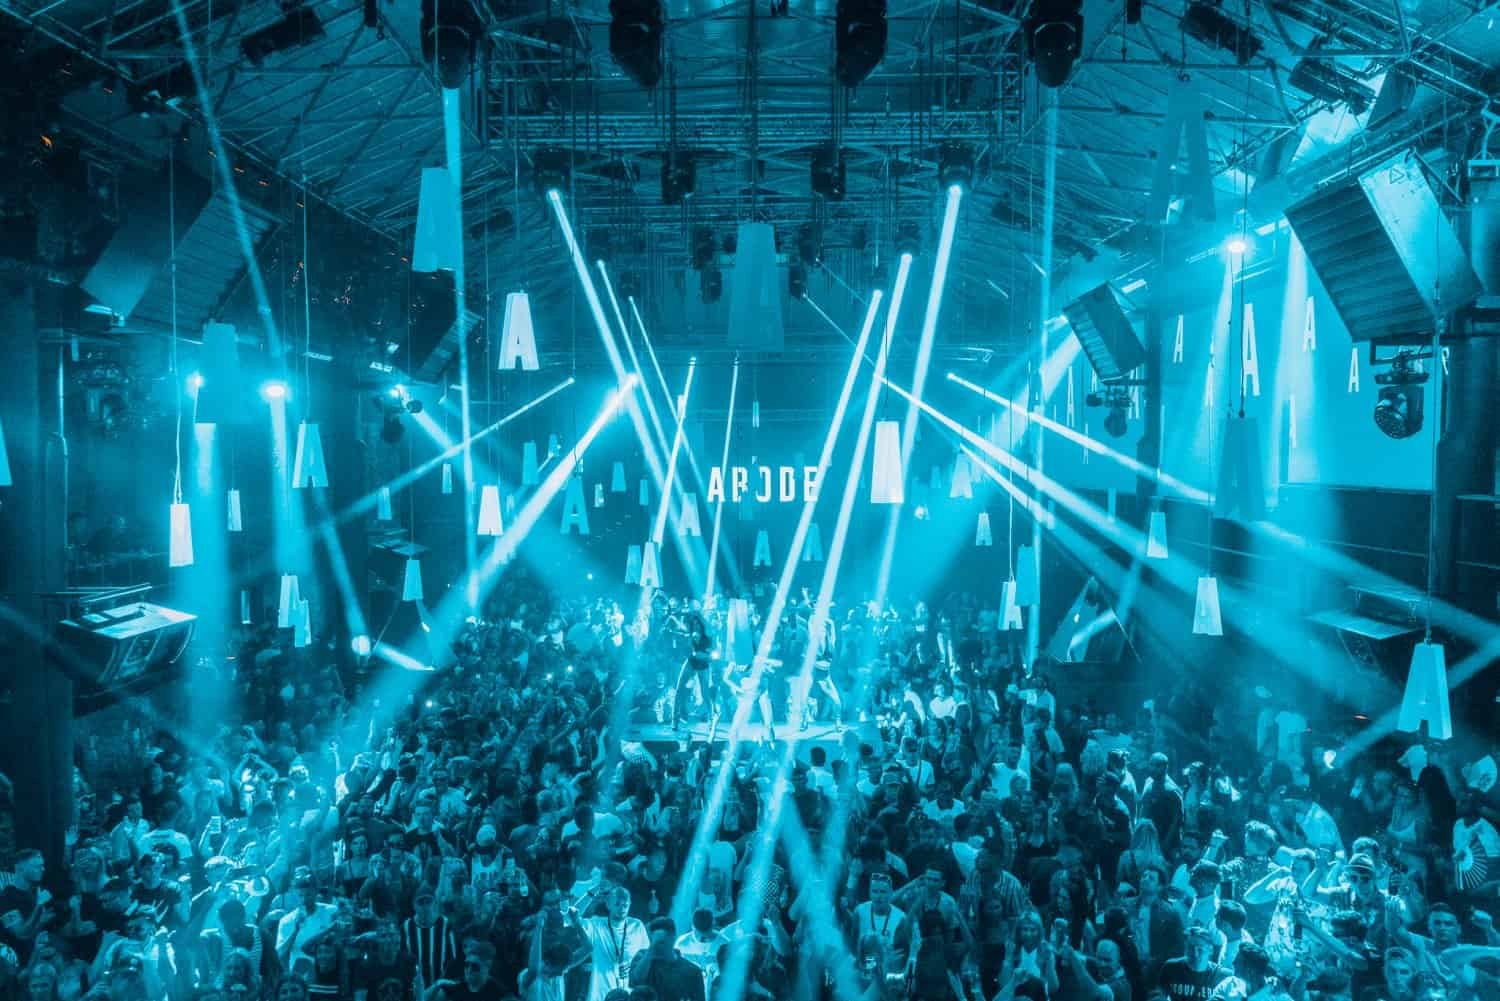 Amnesia Ibiza 2019 - Tickets, Events and Lineup 6